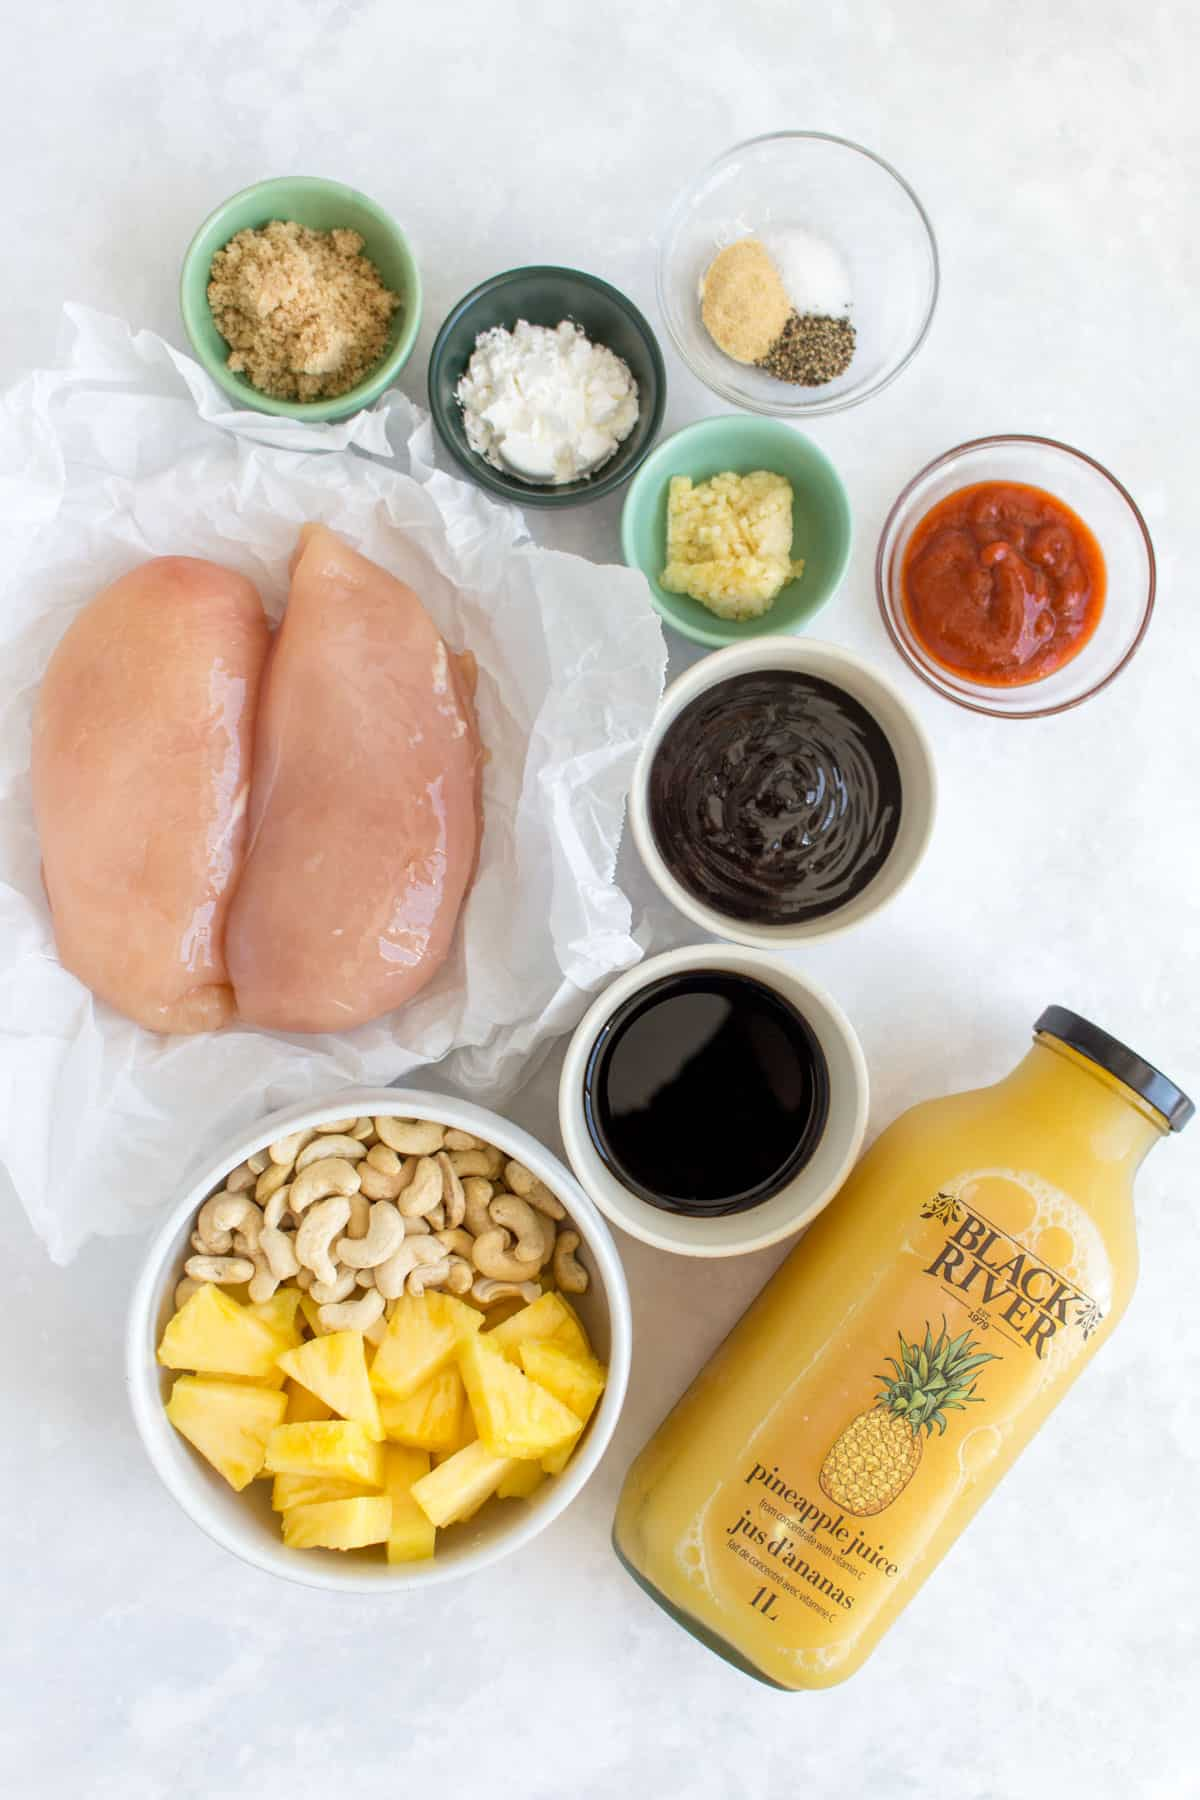 Ingredients needed to make spicy pineapple chicken.